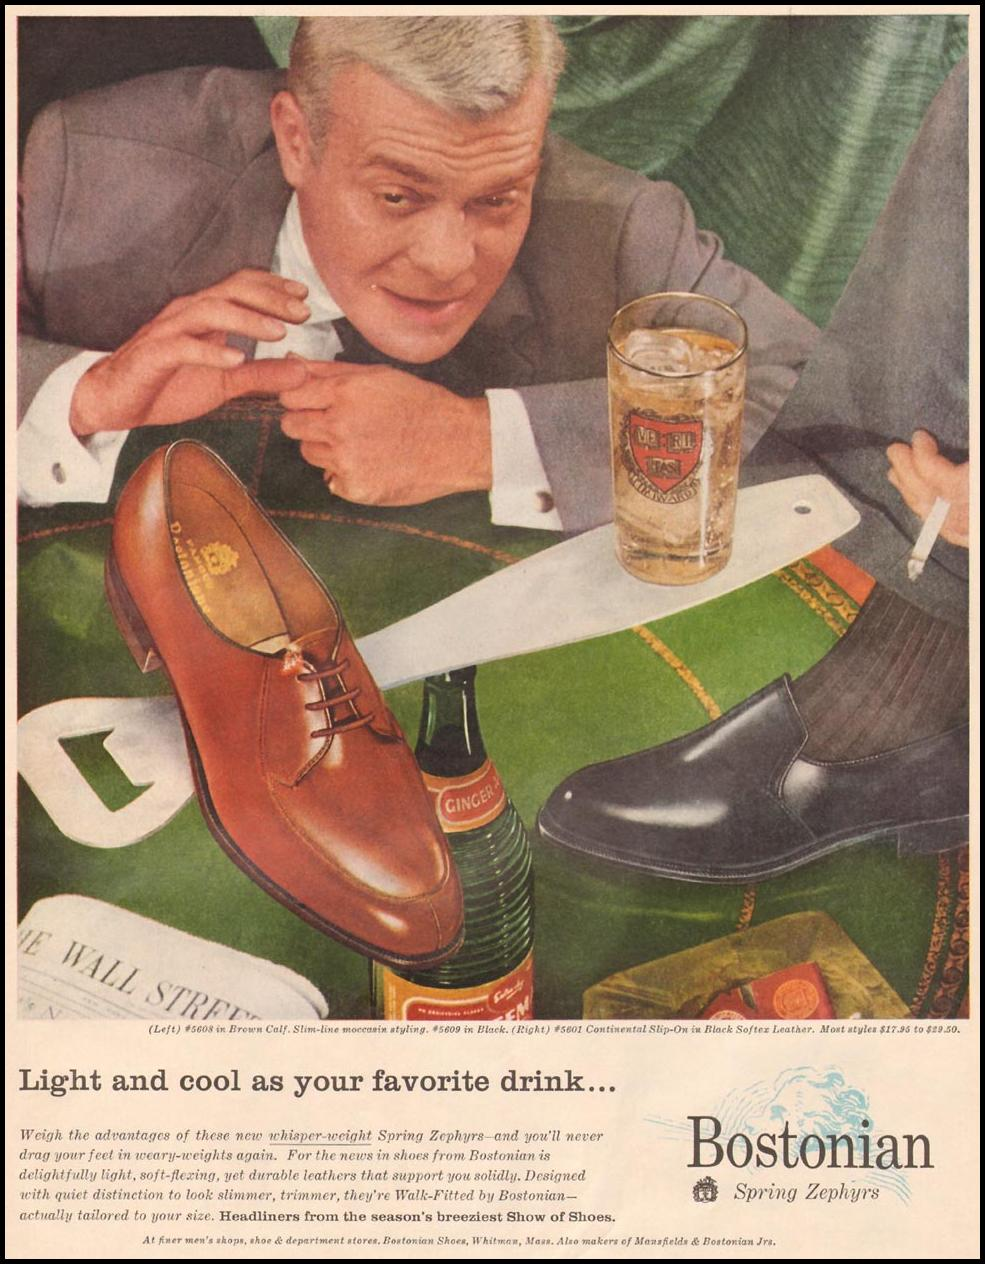 BOSTONIAN SPRING ZEPHYR SHOES LIFE 04/01/1957 p. 93